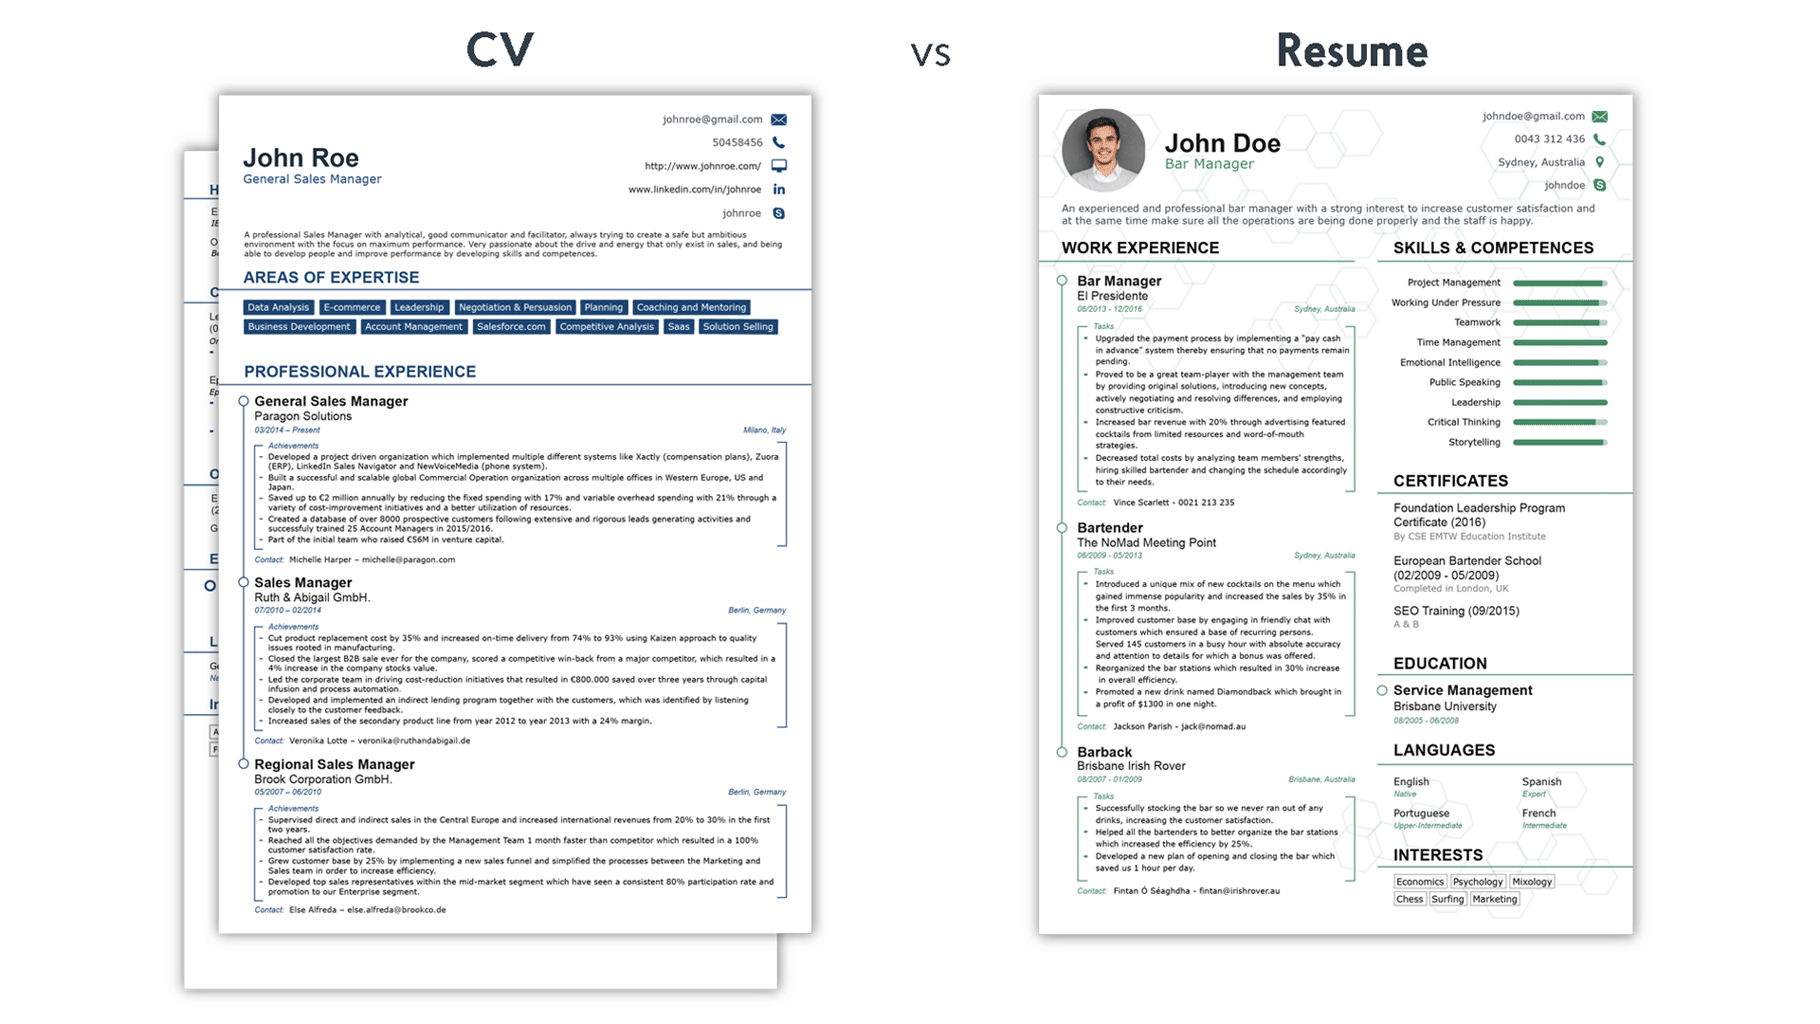 curriculum vitae or resume - Yeni.mescale.co